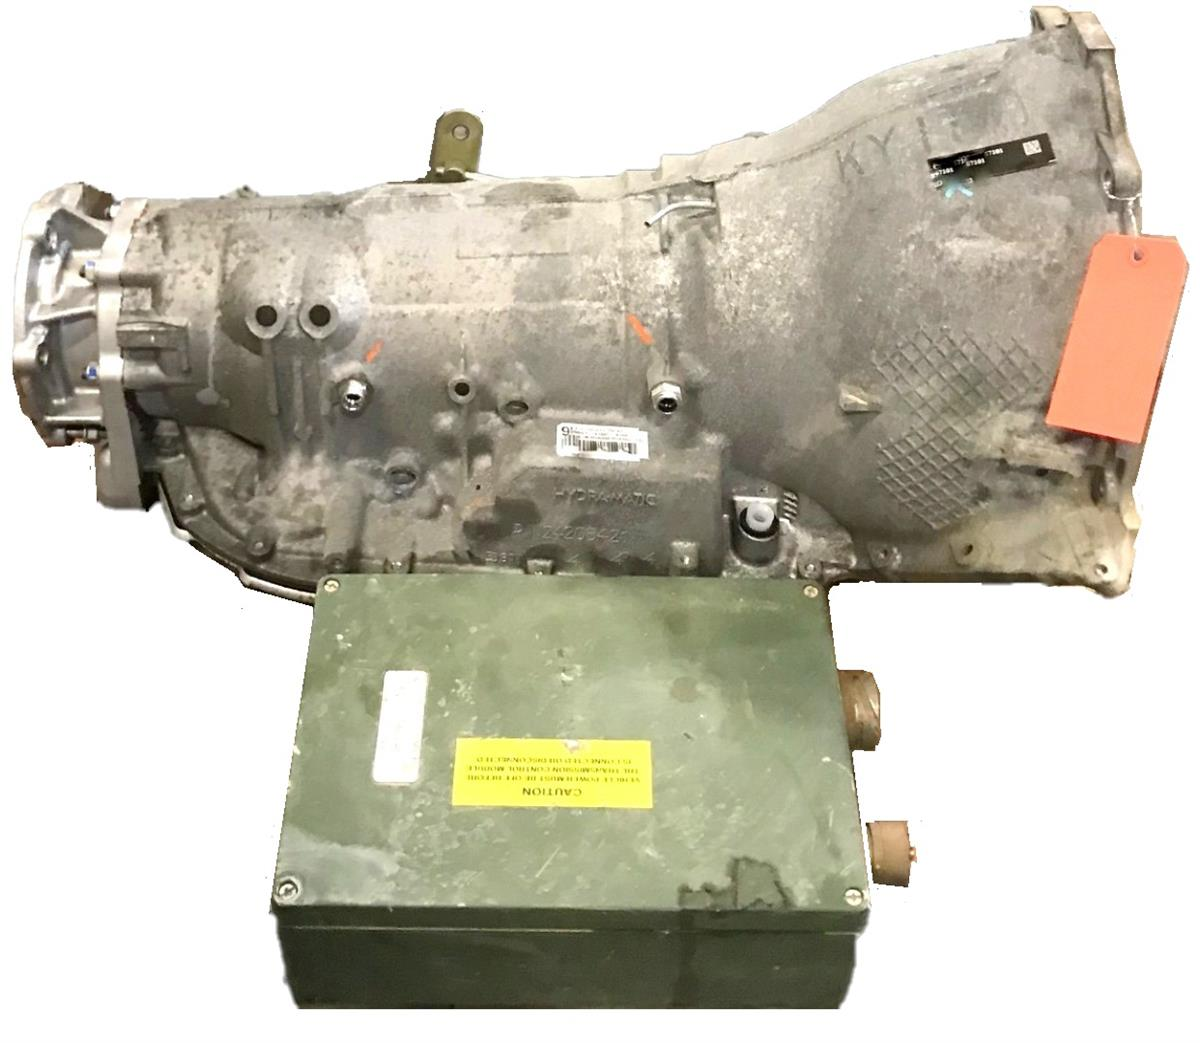 HM-696 | HM-696  Automatic GM 4-Speed Transmission Model GM 4L80-E  (3).jpg